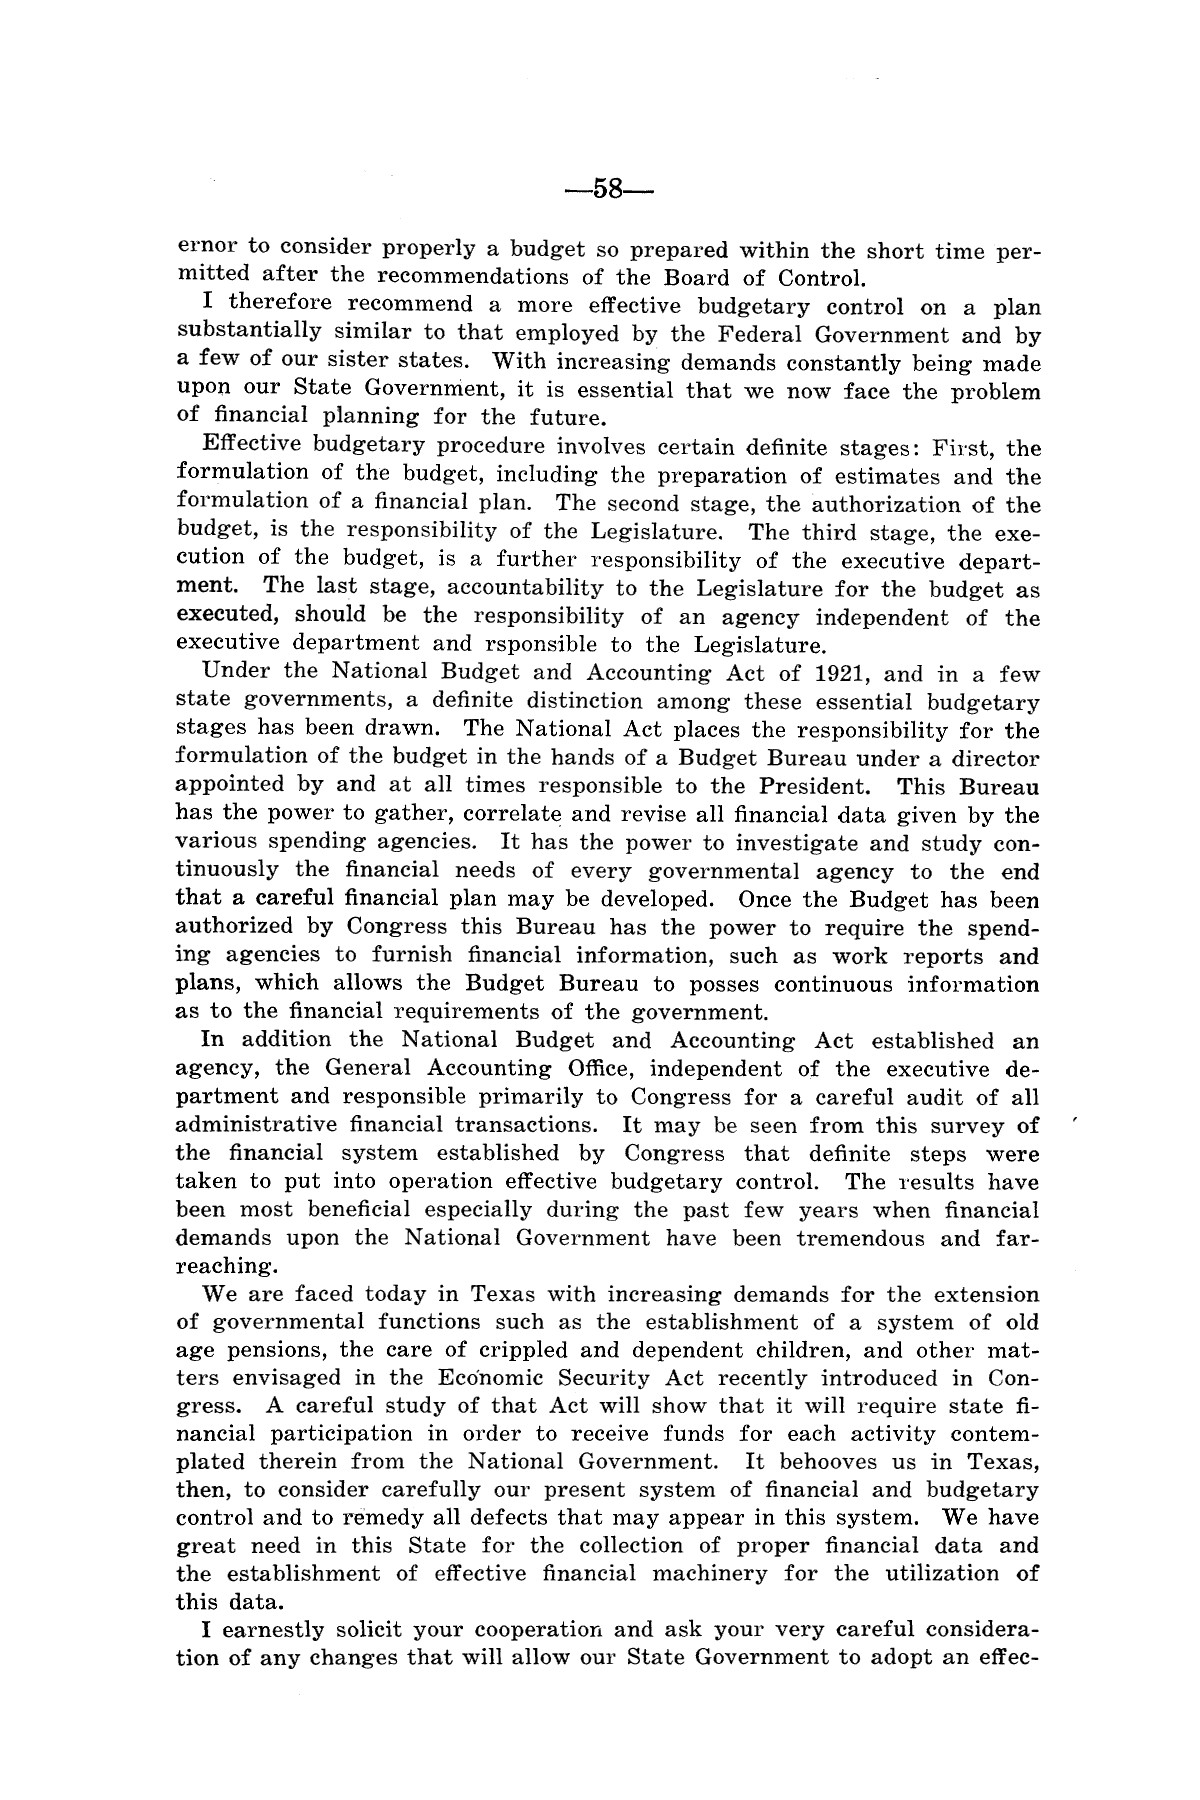 Legislative Messages of Hon. James V. Allred, Governor of Texas 1935-1939                                                                                                      [Sequence #]: 57 of 263